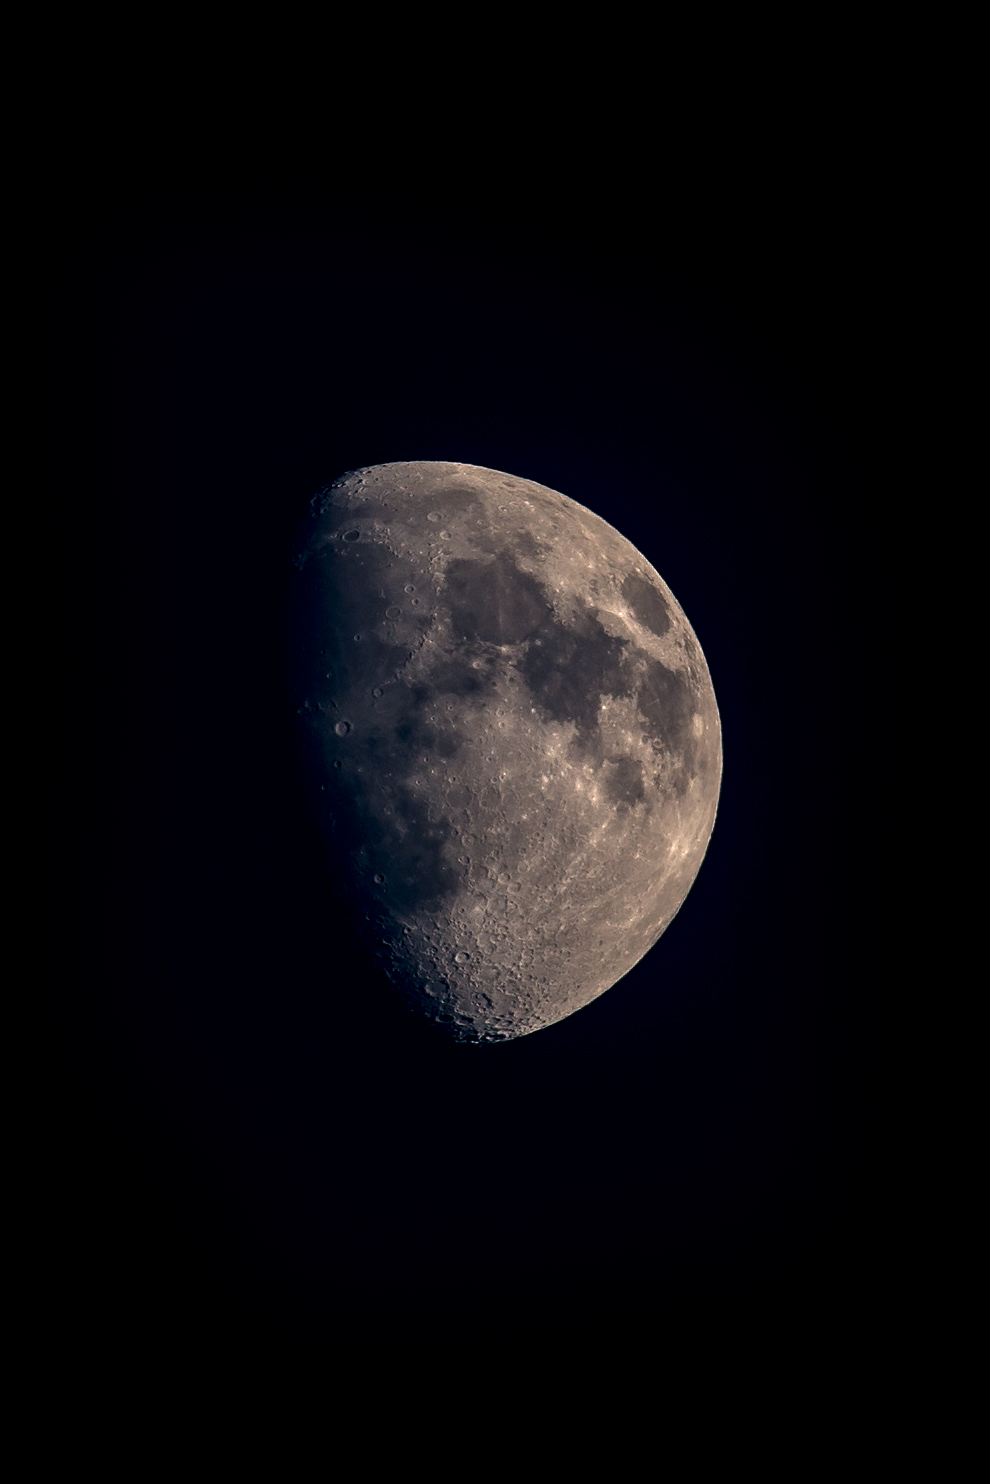 The moon taken with a 400mm F/5.6L on a Canon 5D Mark III on a tripod.